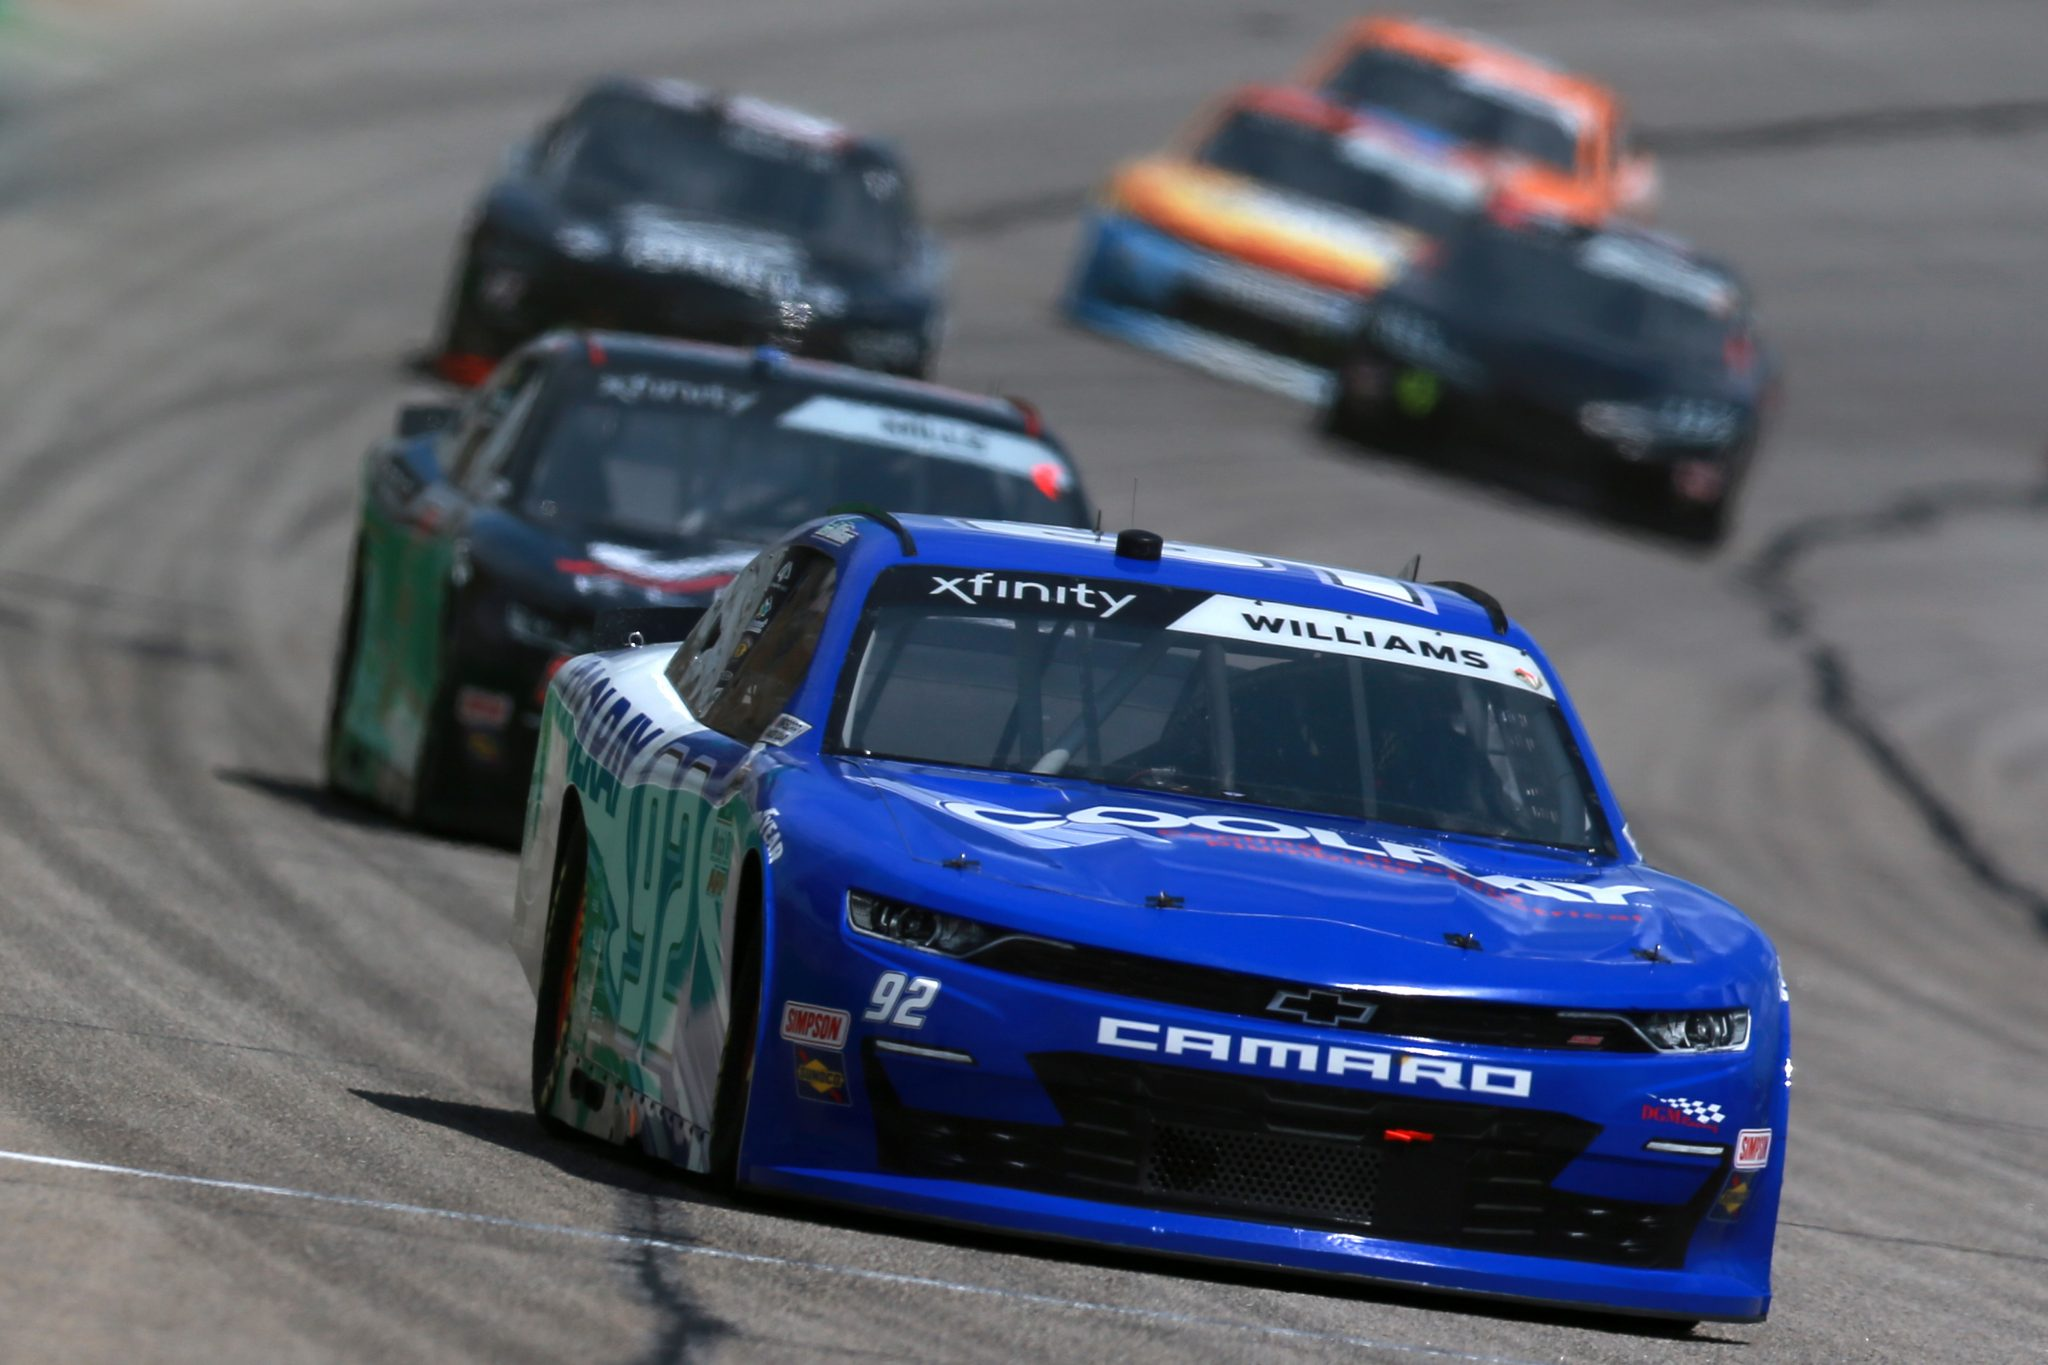 HAMPTON, GEORGIA - JULY 10: Josh Williams, driver of the #92 Cooray Heating & AC Chevrolet, drives during the NASCAR Xfinity Series Credit Karma Money 250 at Atlanta Motor Speedway on July 10, 2021 in Hampton, Georgia. (Photo by Sean Gardner/Getty Images)   Getty Images